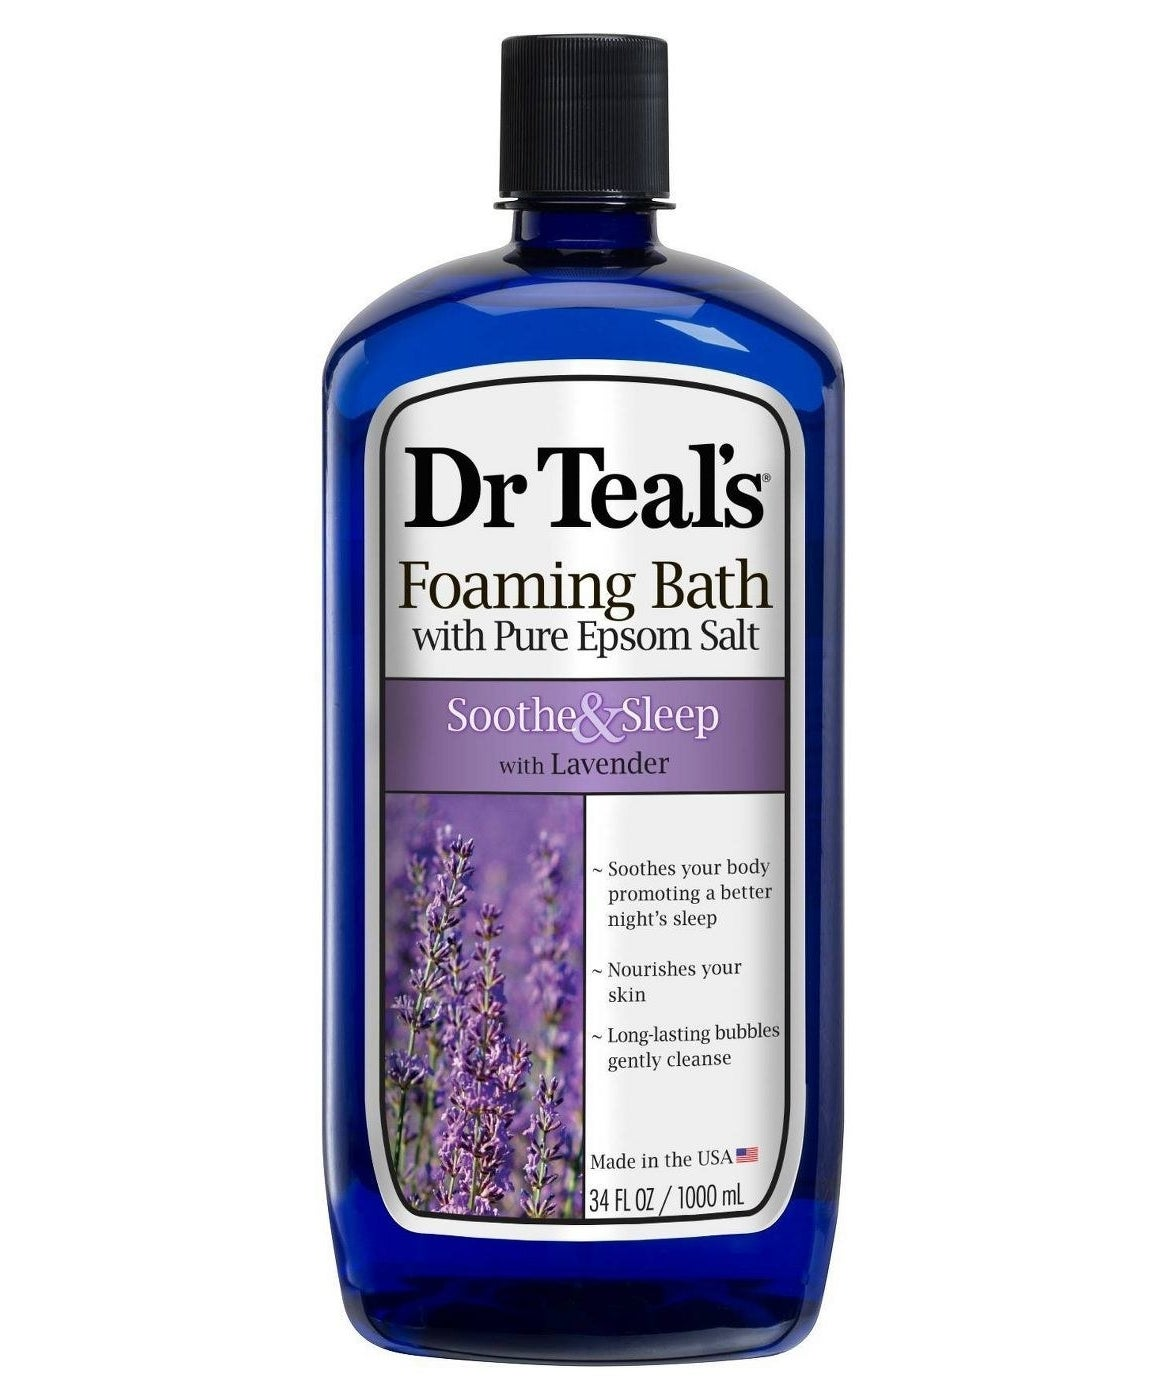 bottle of dr teal's foaming bath with pure epson salt and lavender essense